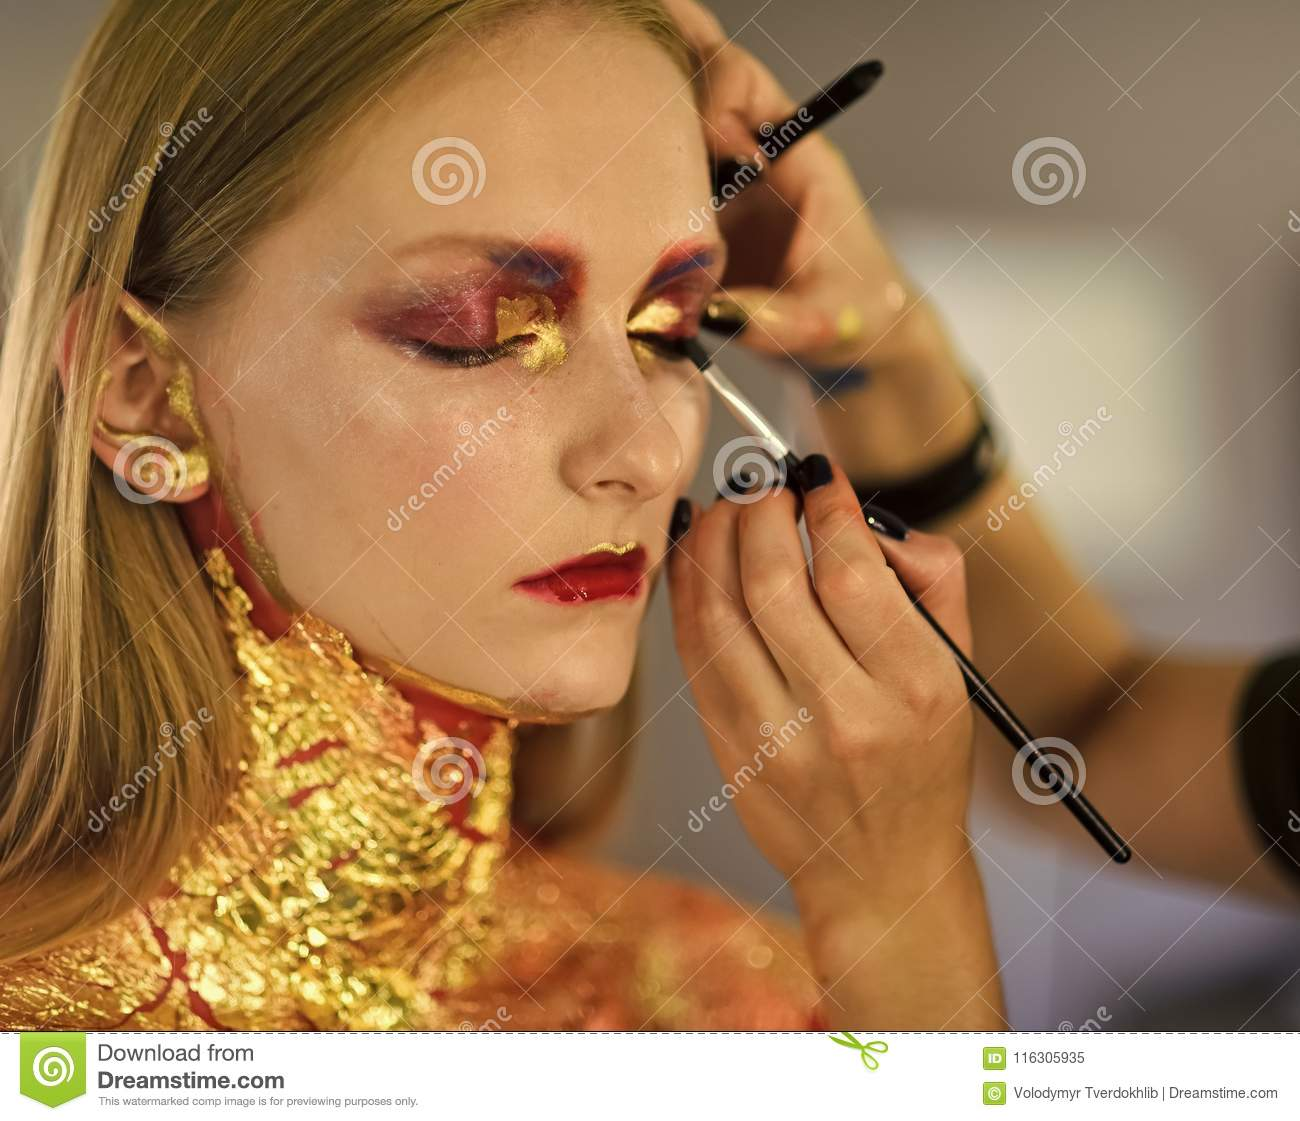 download beauty model getting art make up done visage stock image image of horror